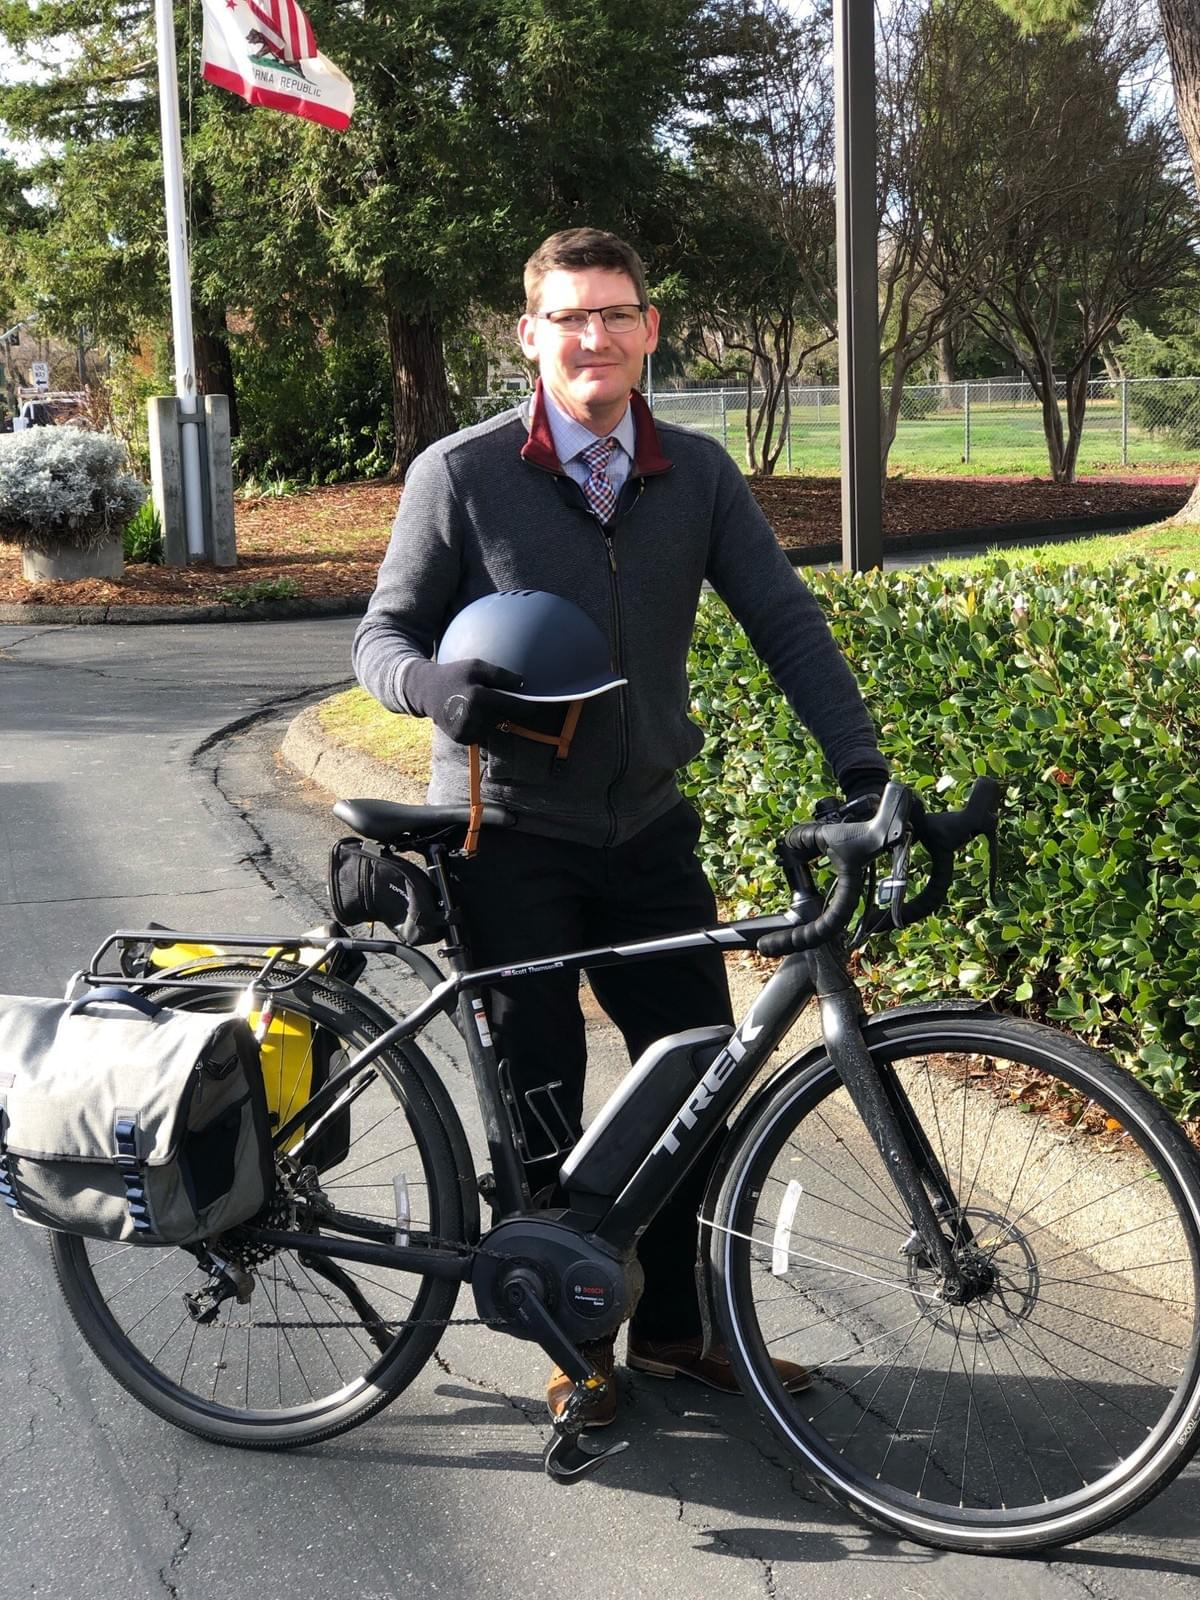 Scott Thomsen, Principal of Ralph Waldo Emerson Junior High School in Davis, commutes to work from Woodland most days, rain or shine, on his e-bike, which can reach 27 m.p.h.